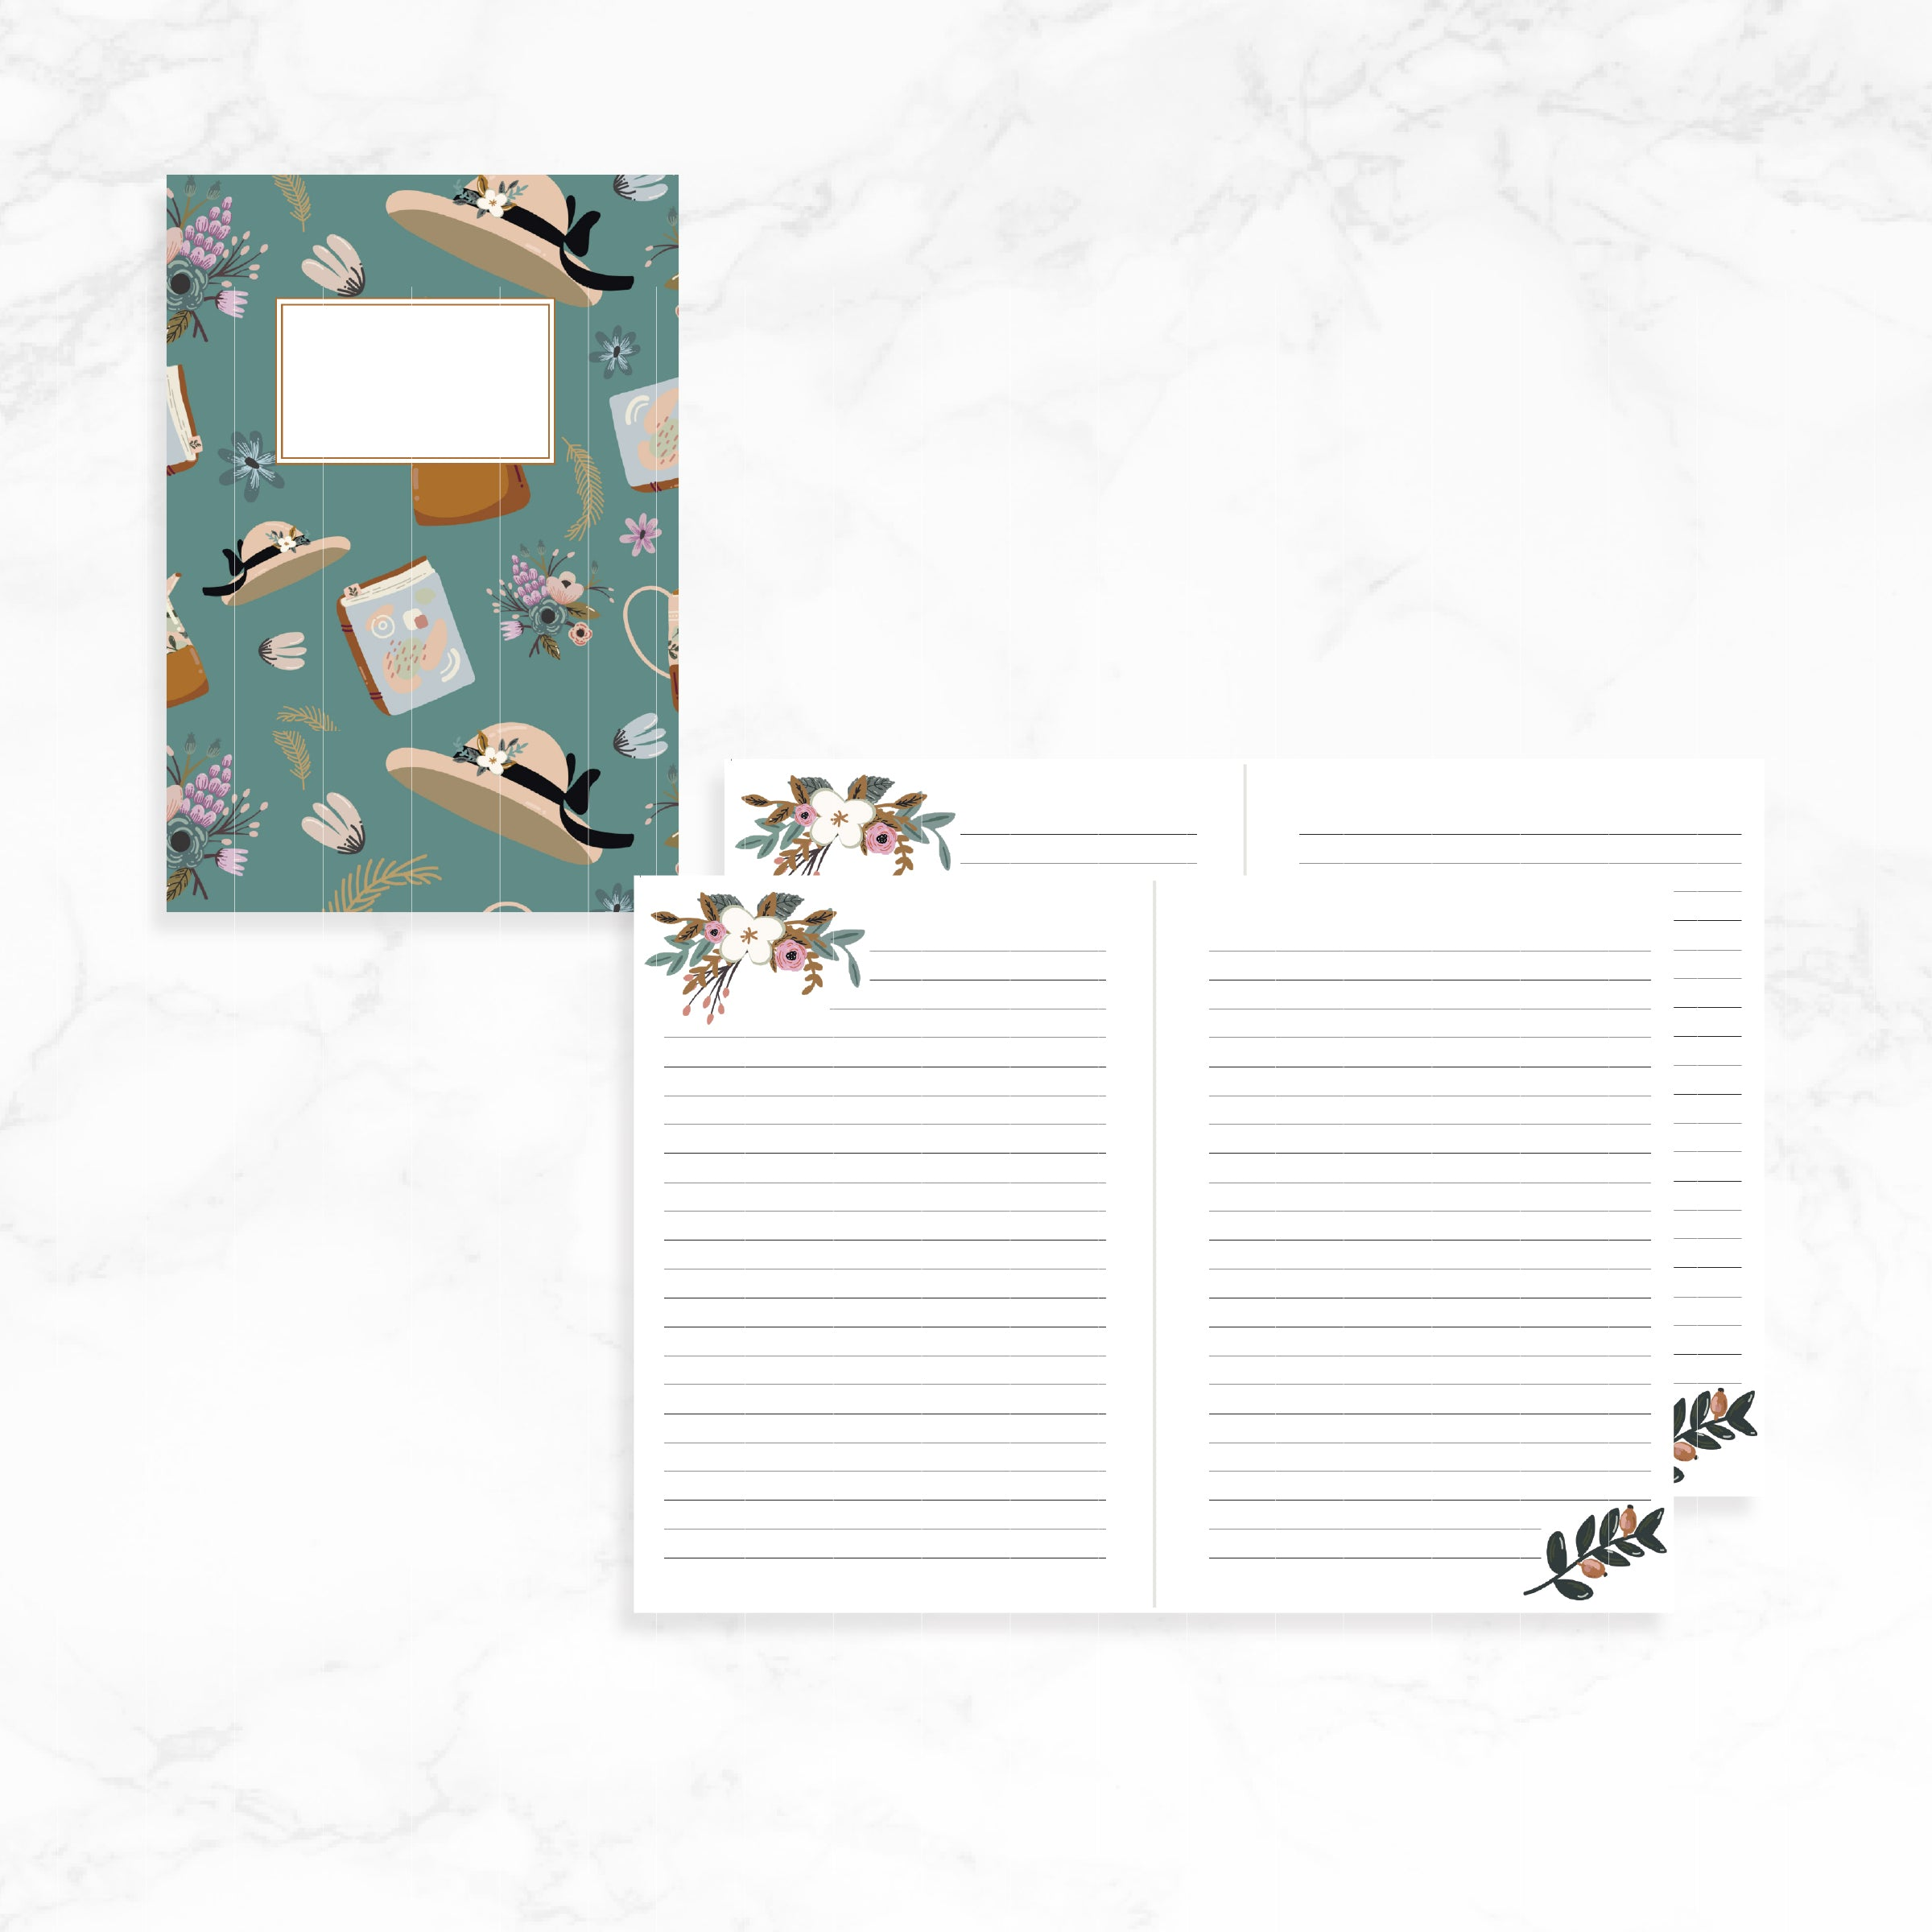 Pocket Travelers Notebook Printable / Instant Download // Fall 2 // Lined Journal TN